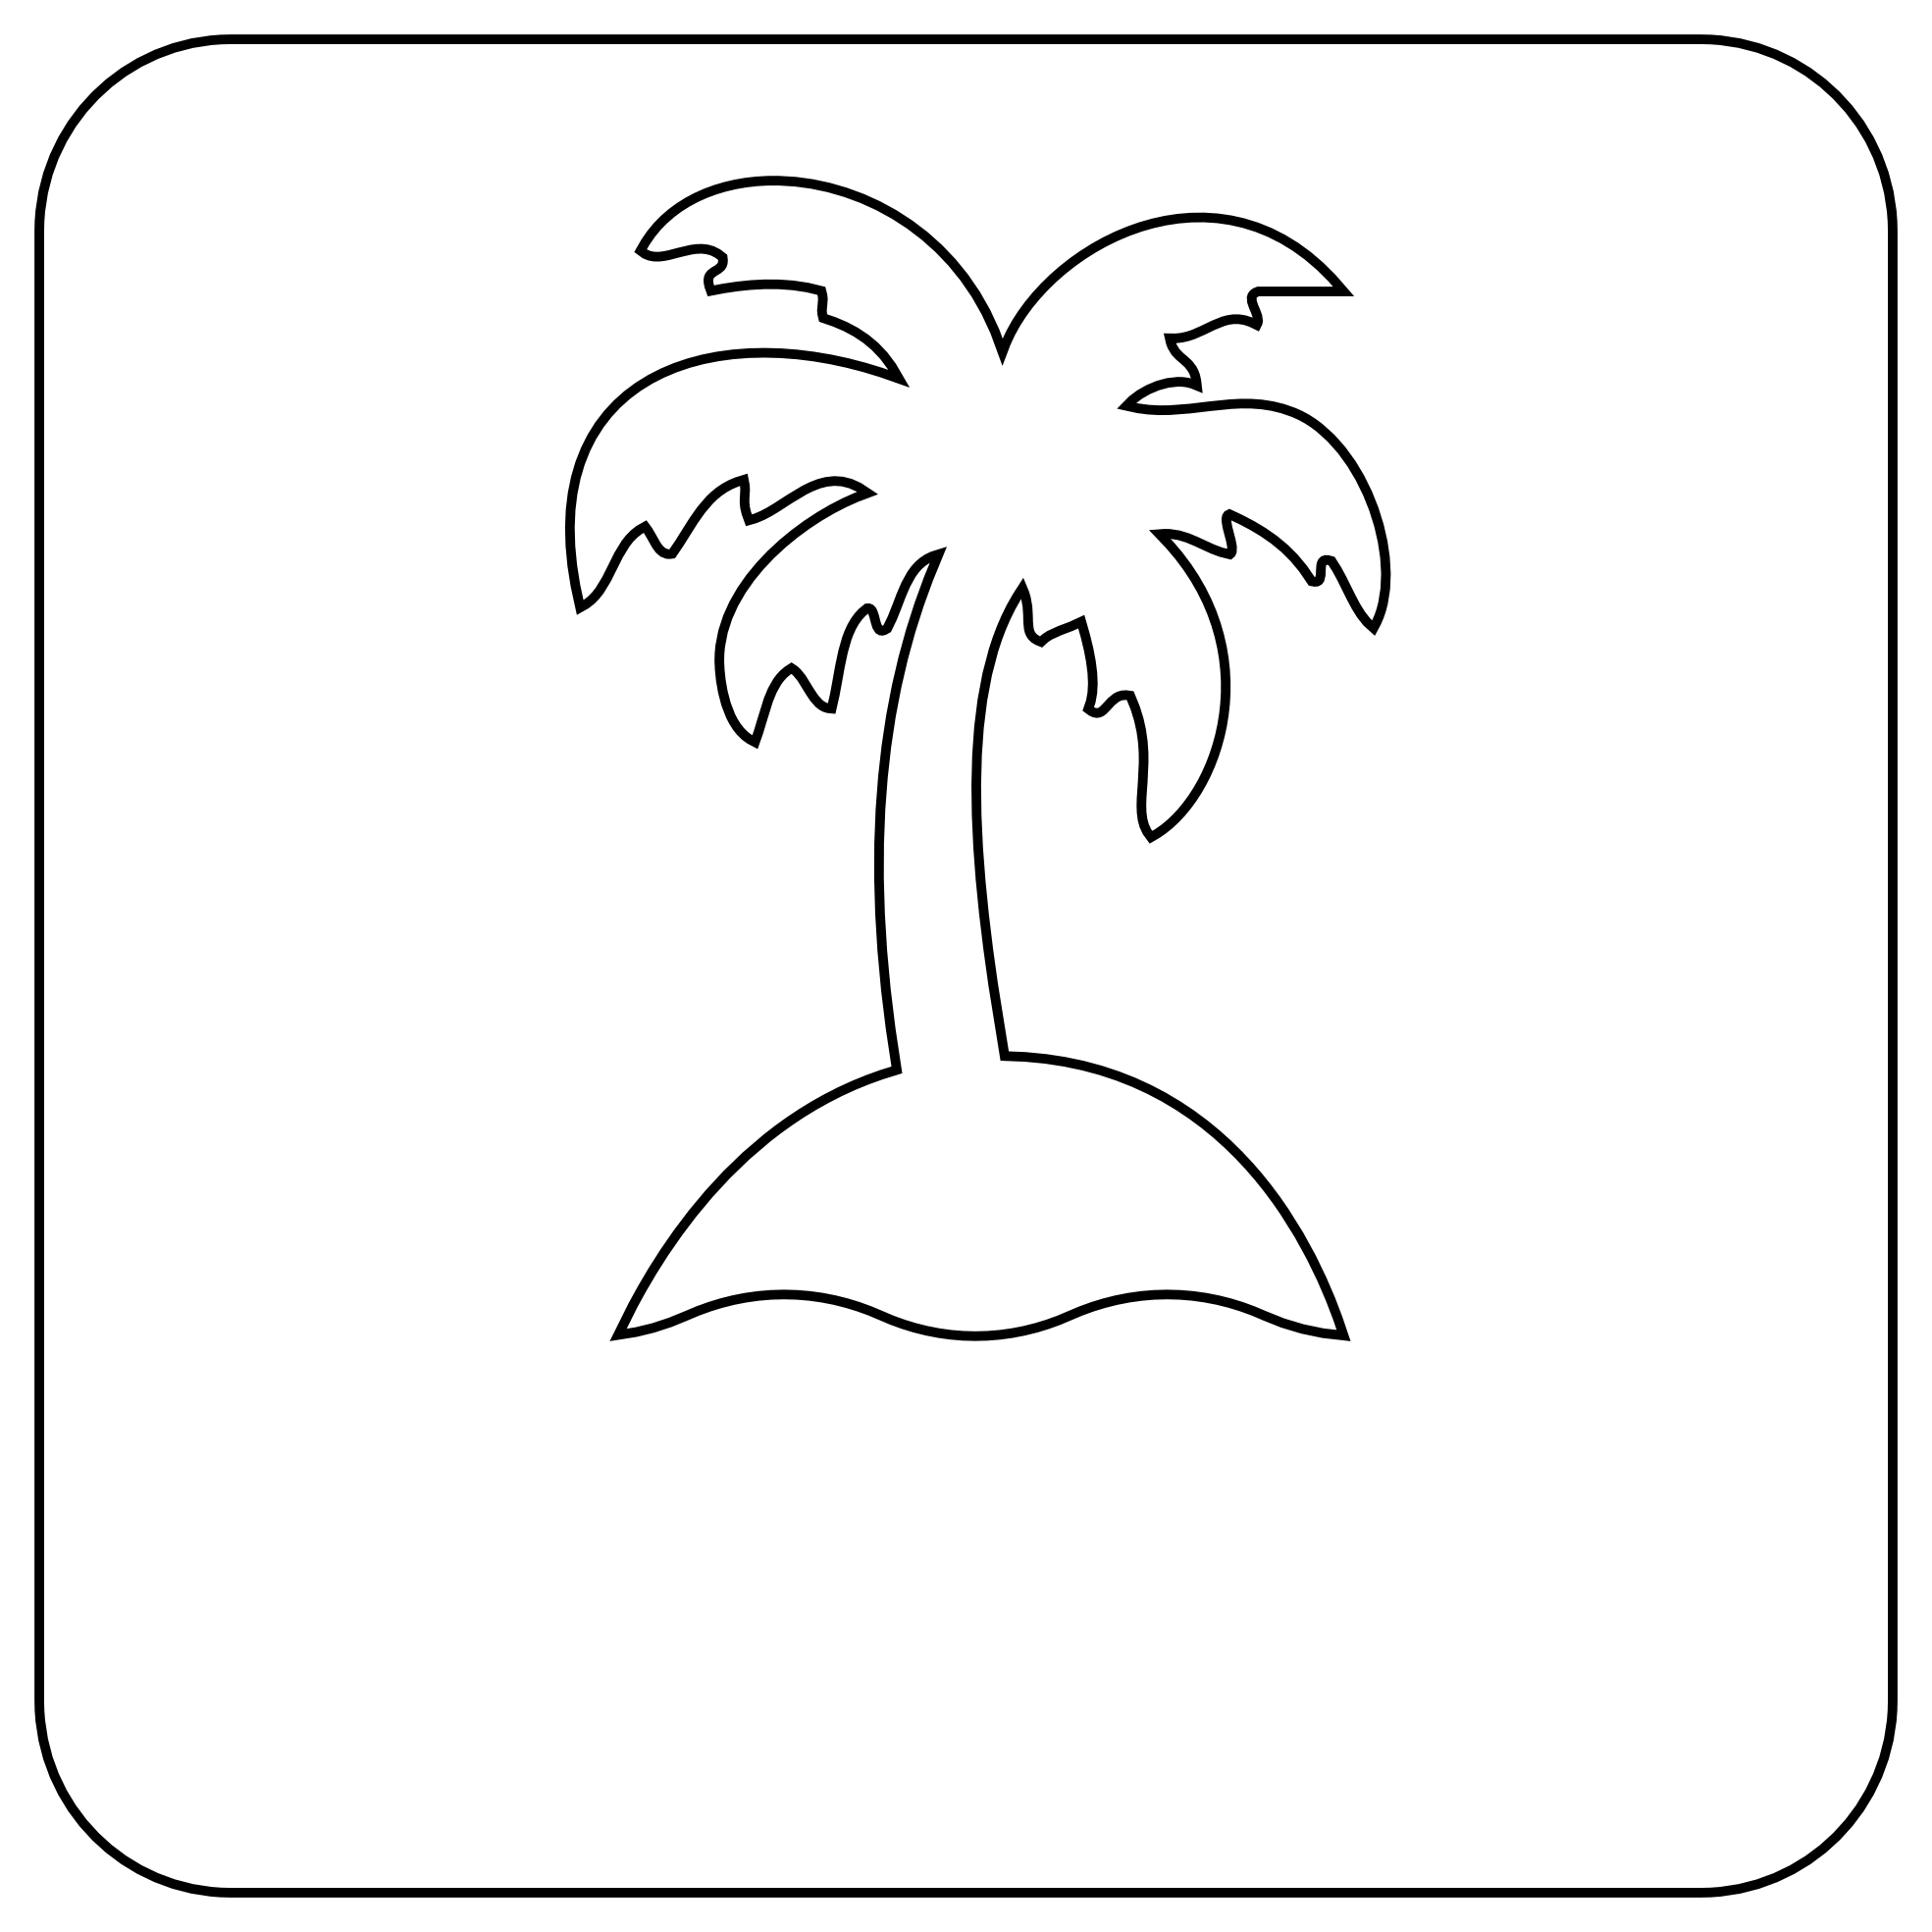 Tree black and white palm tree clipart black and white free.